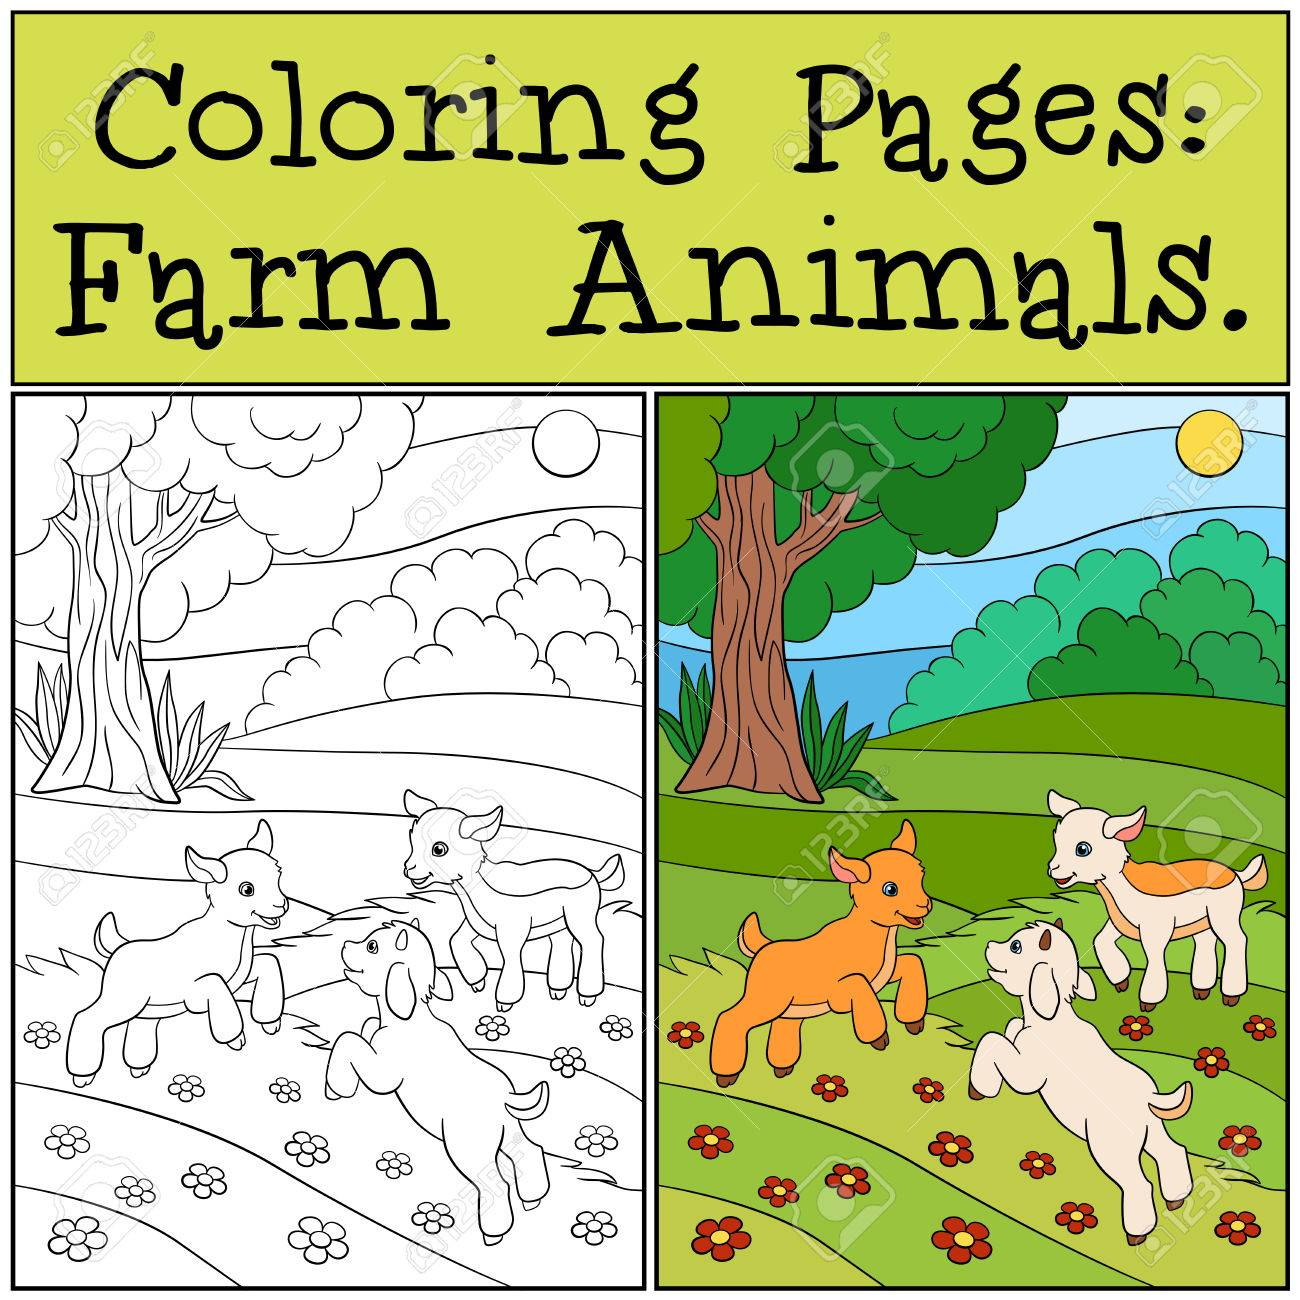 Coloring Pages: Farm Animals. Three Little Cute Baby Goats Play ...